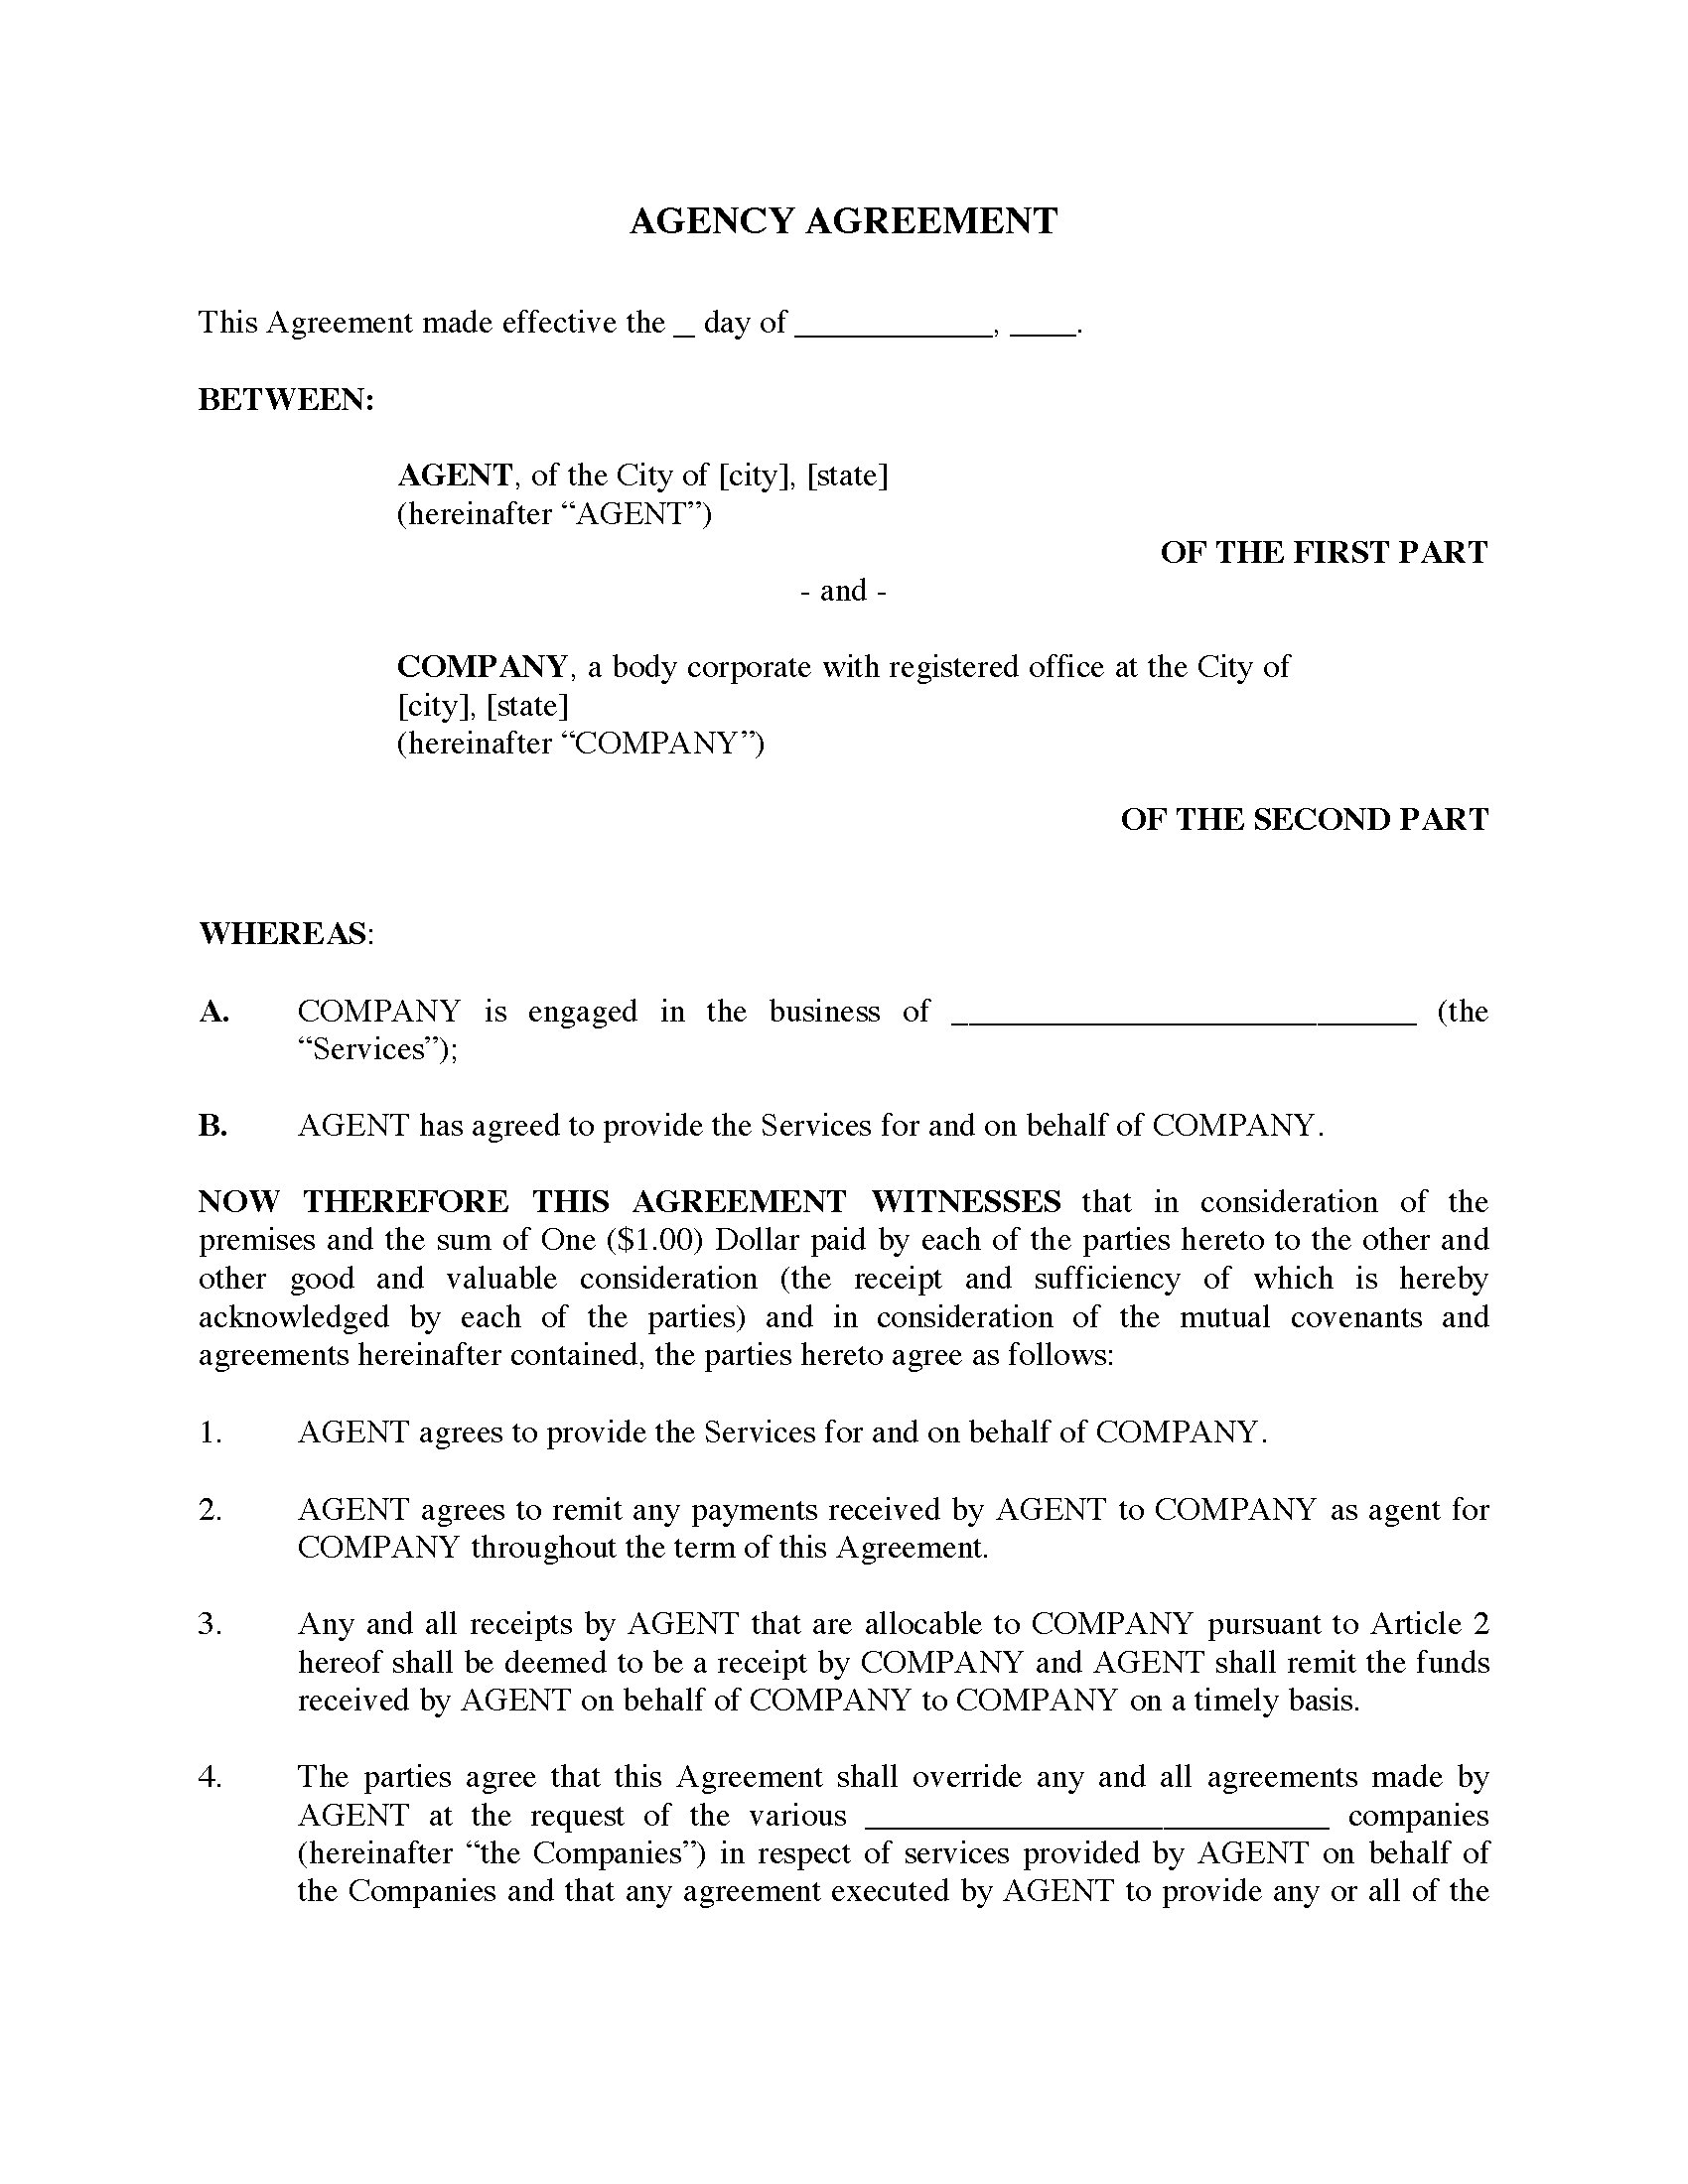 USA Agency Agreement - domestic | Legal Forms and Business Templates ...